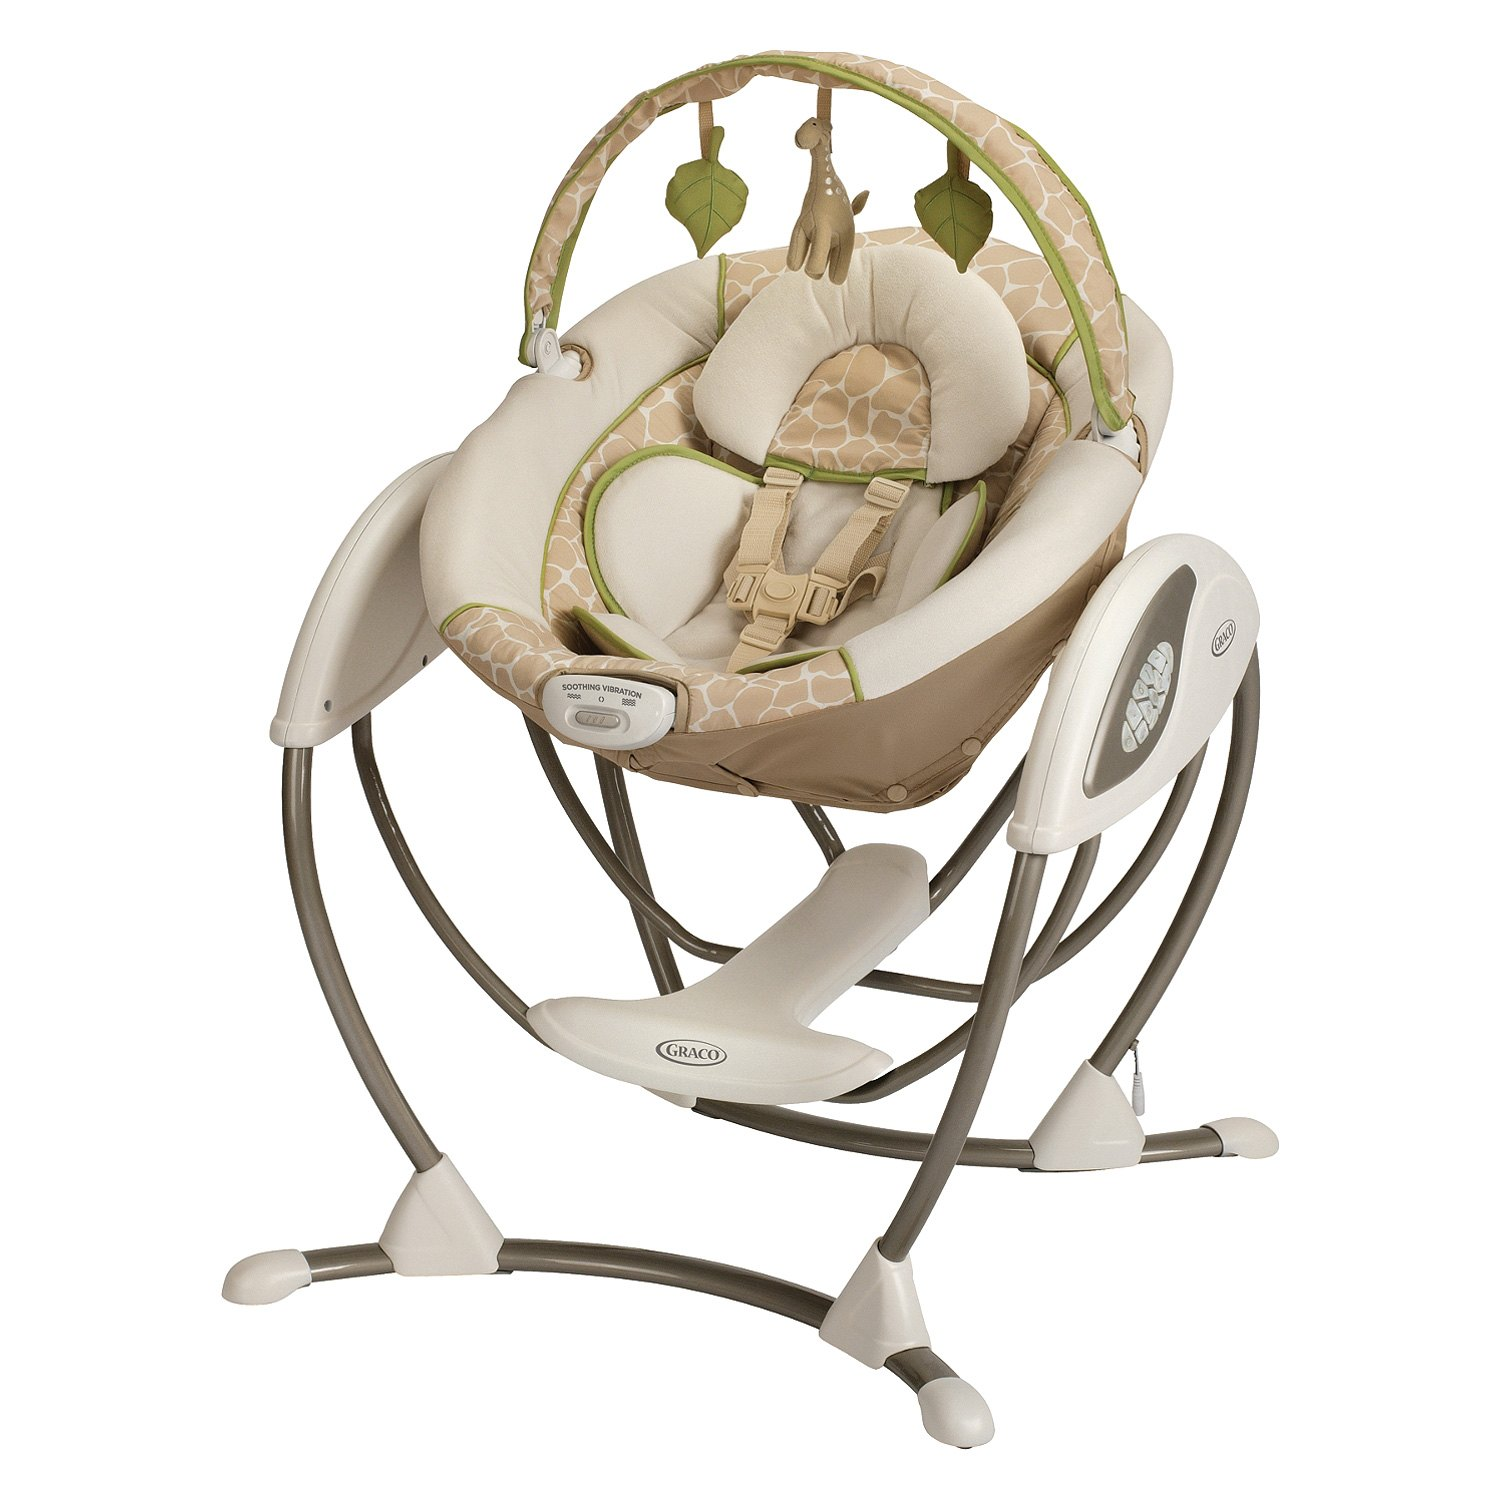 Graco Baby 174 Glider Lx Gliding Swing Bassinet